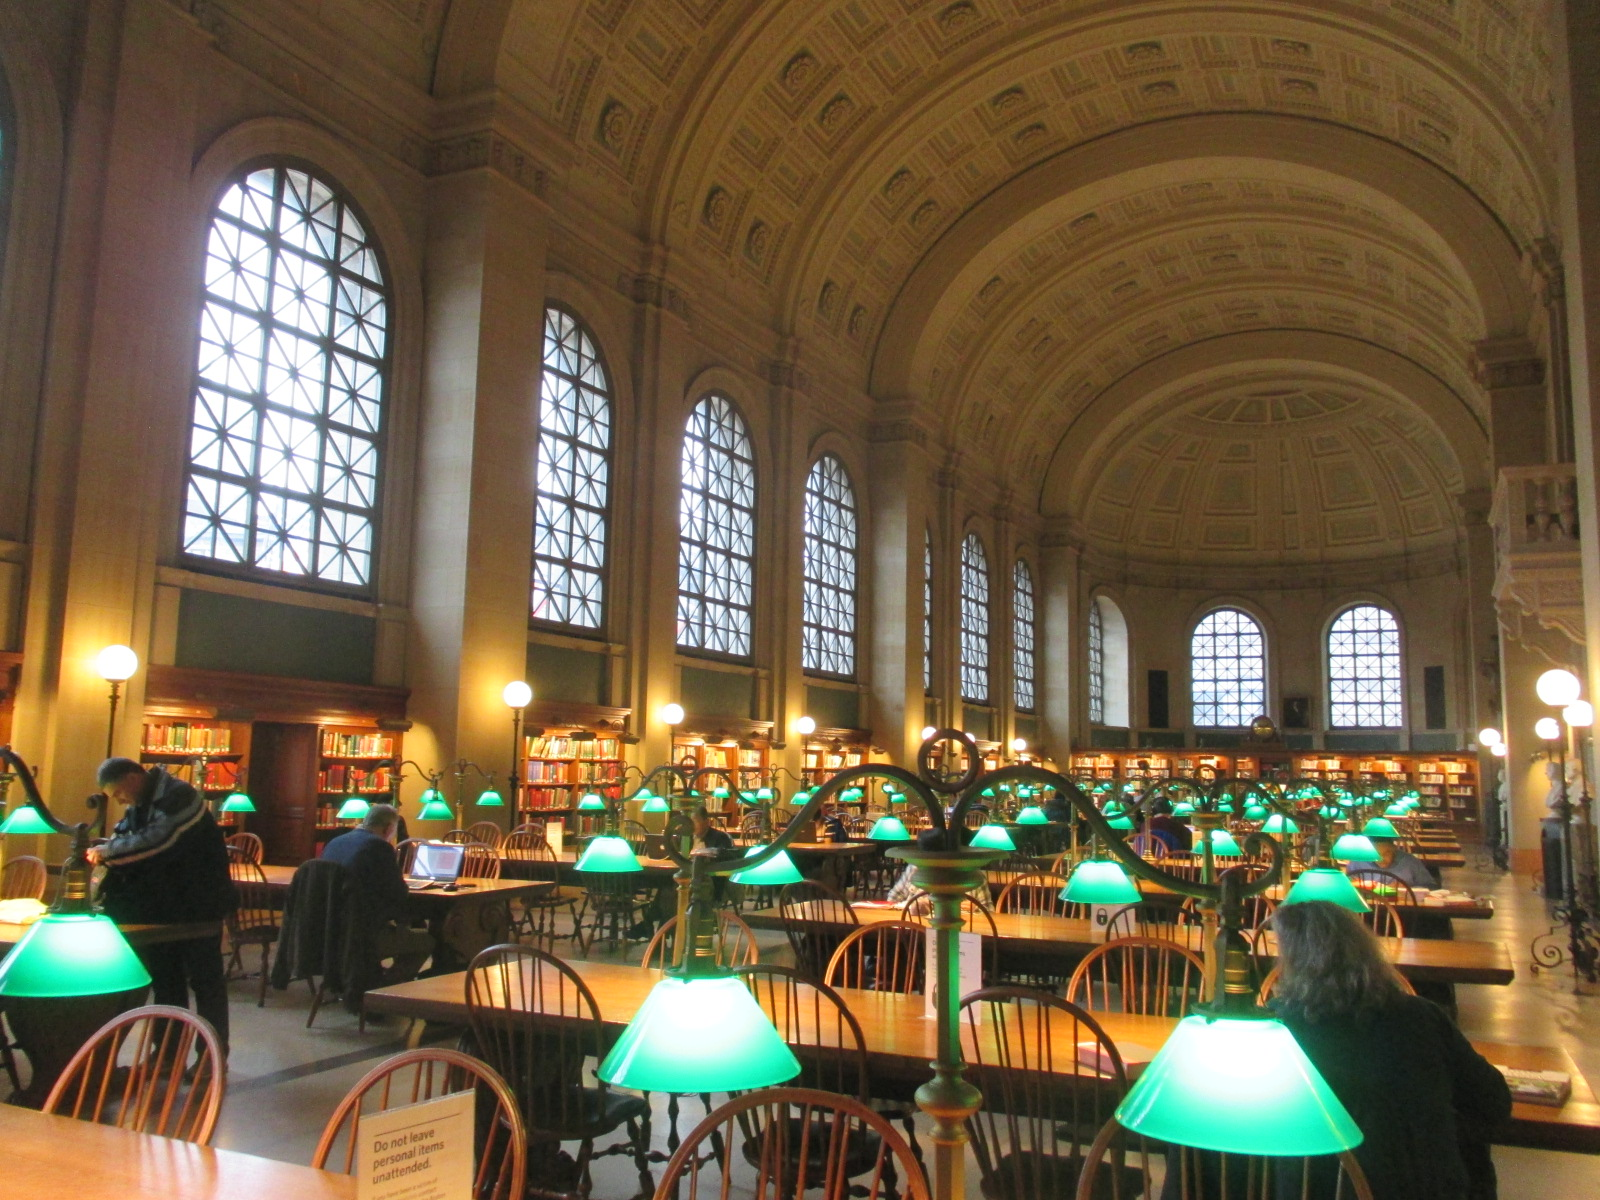 Boston Public Library Art And Architecture 11 28 15 52 Math Wallpaper Golden Find Free HD for Desktop [pastnedes.tk]